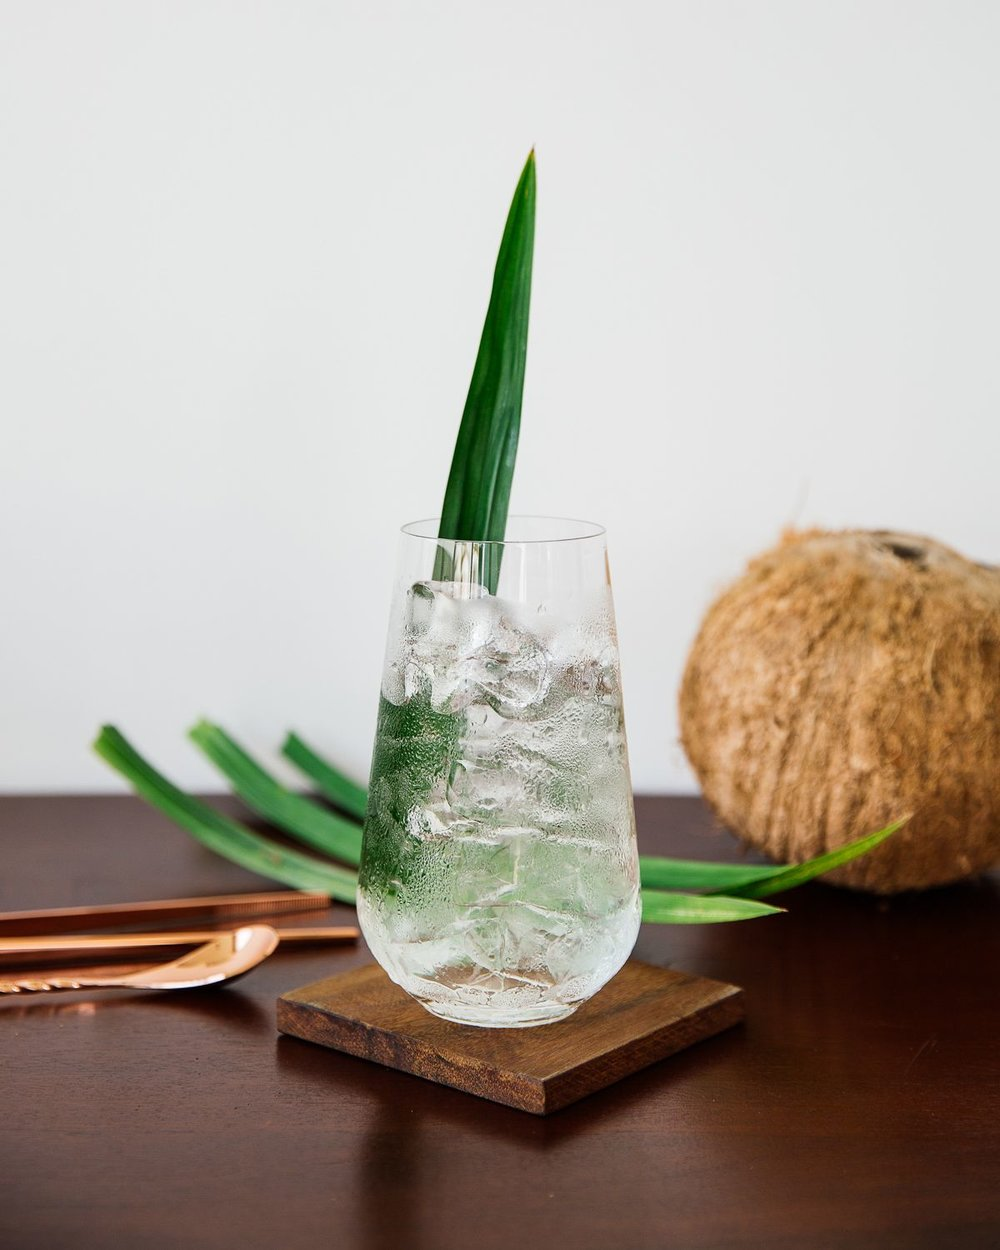 Seekers G&C - The Mekong river in a glass! Refreshing and light.50ml Seekers Mekong Dry150ml Coconut Water10ml Simple SyrupCombine all the ingredients in a highball. Add ice and stir. Garnish with fresh Pandan.